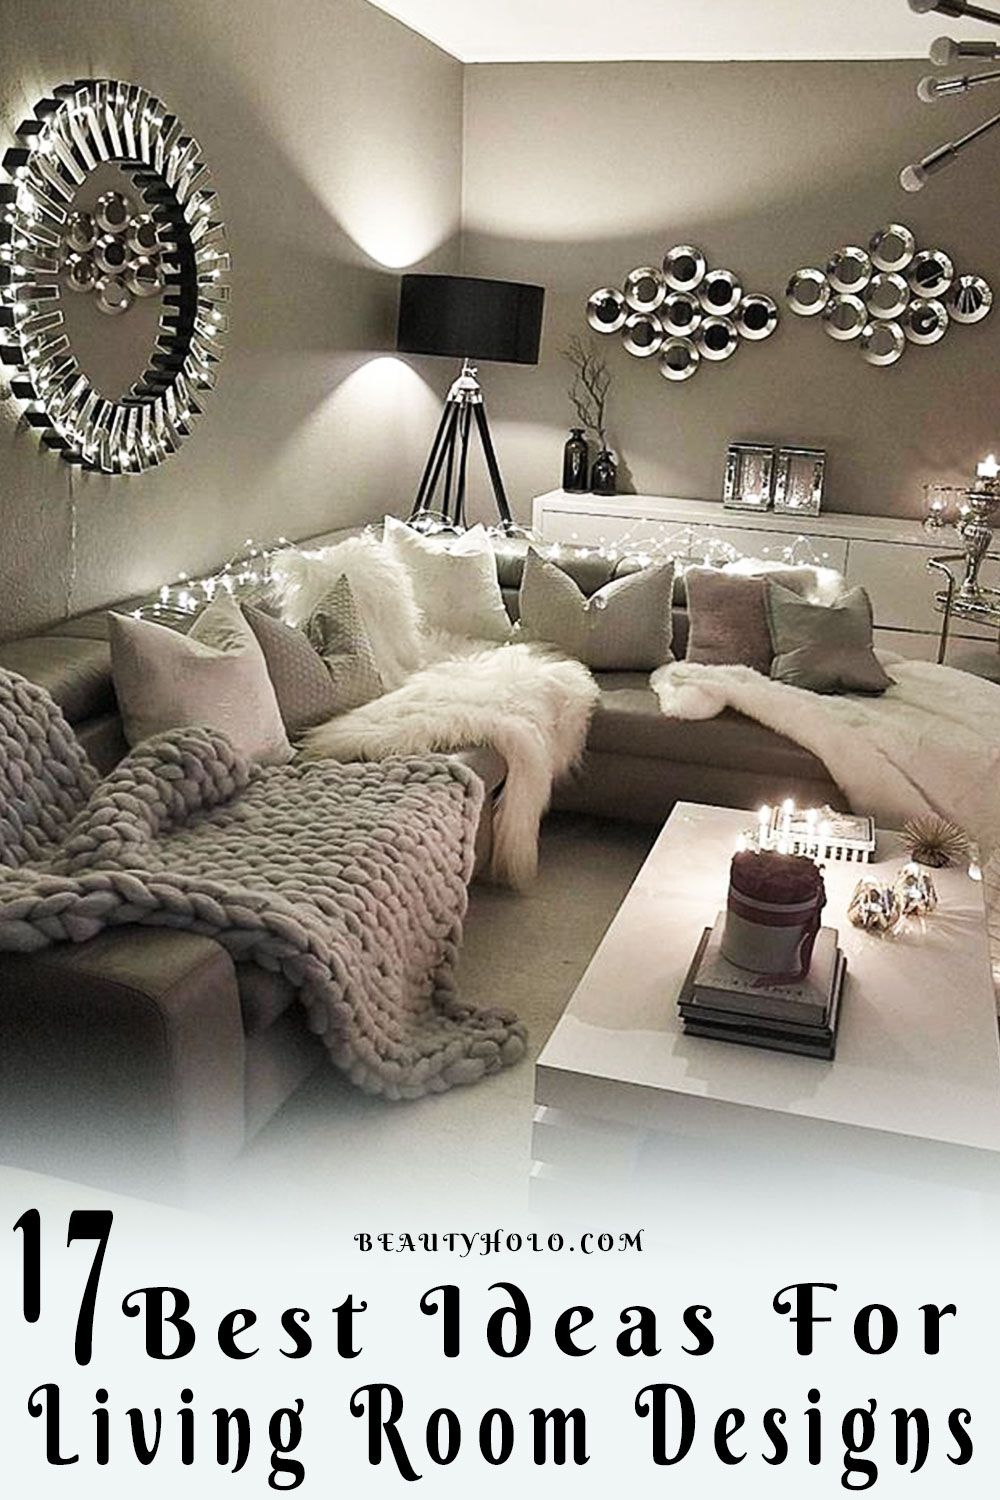 17 Best Home Decor Ideas For Living Room On A Budget In 2021 Home Living Room Living Room Decor Apartment Living Room Designs